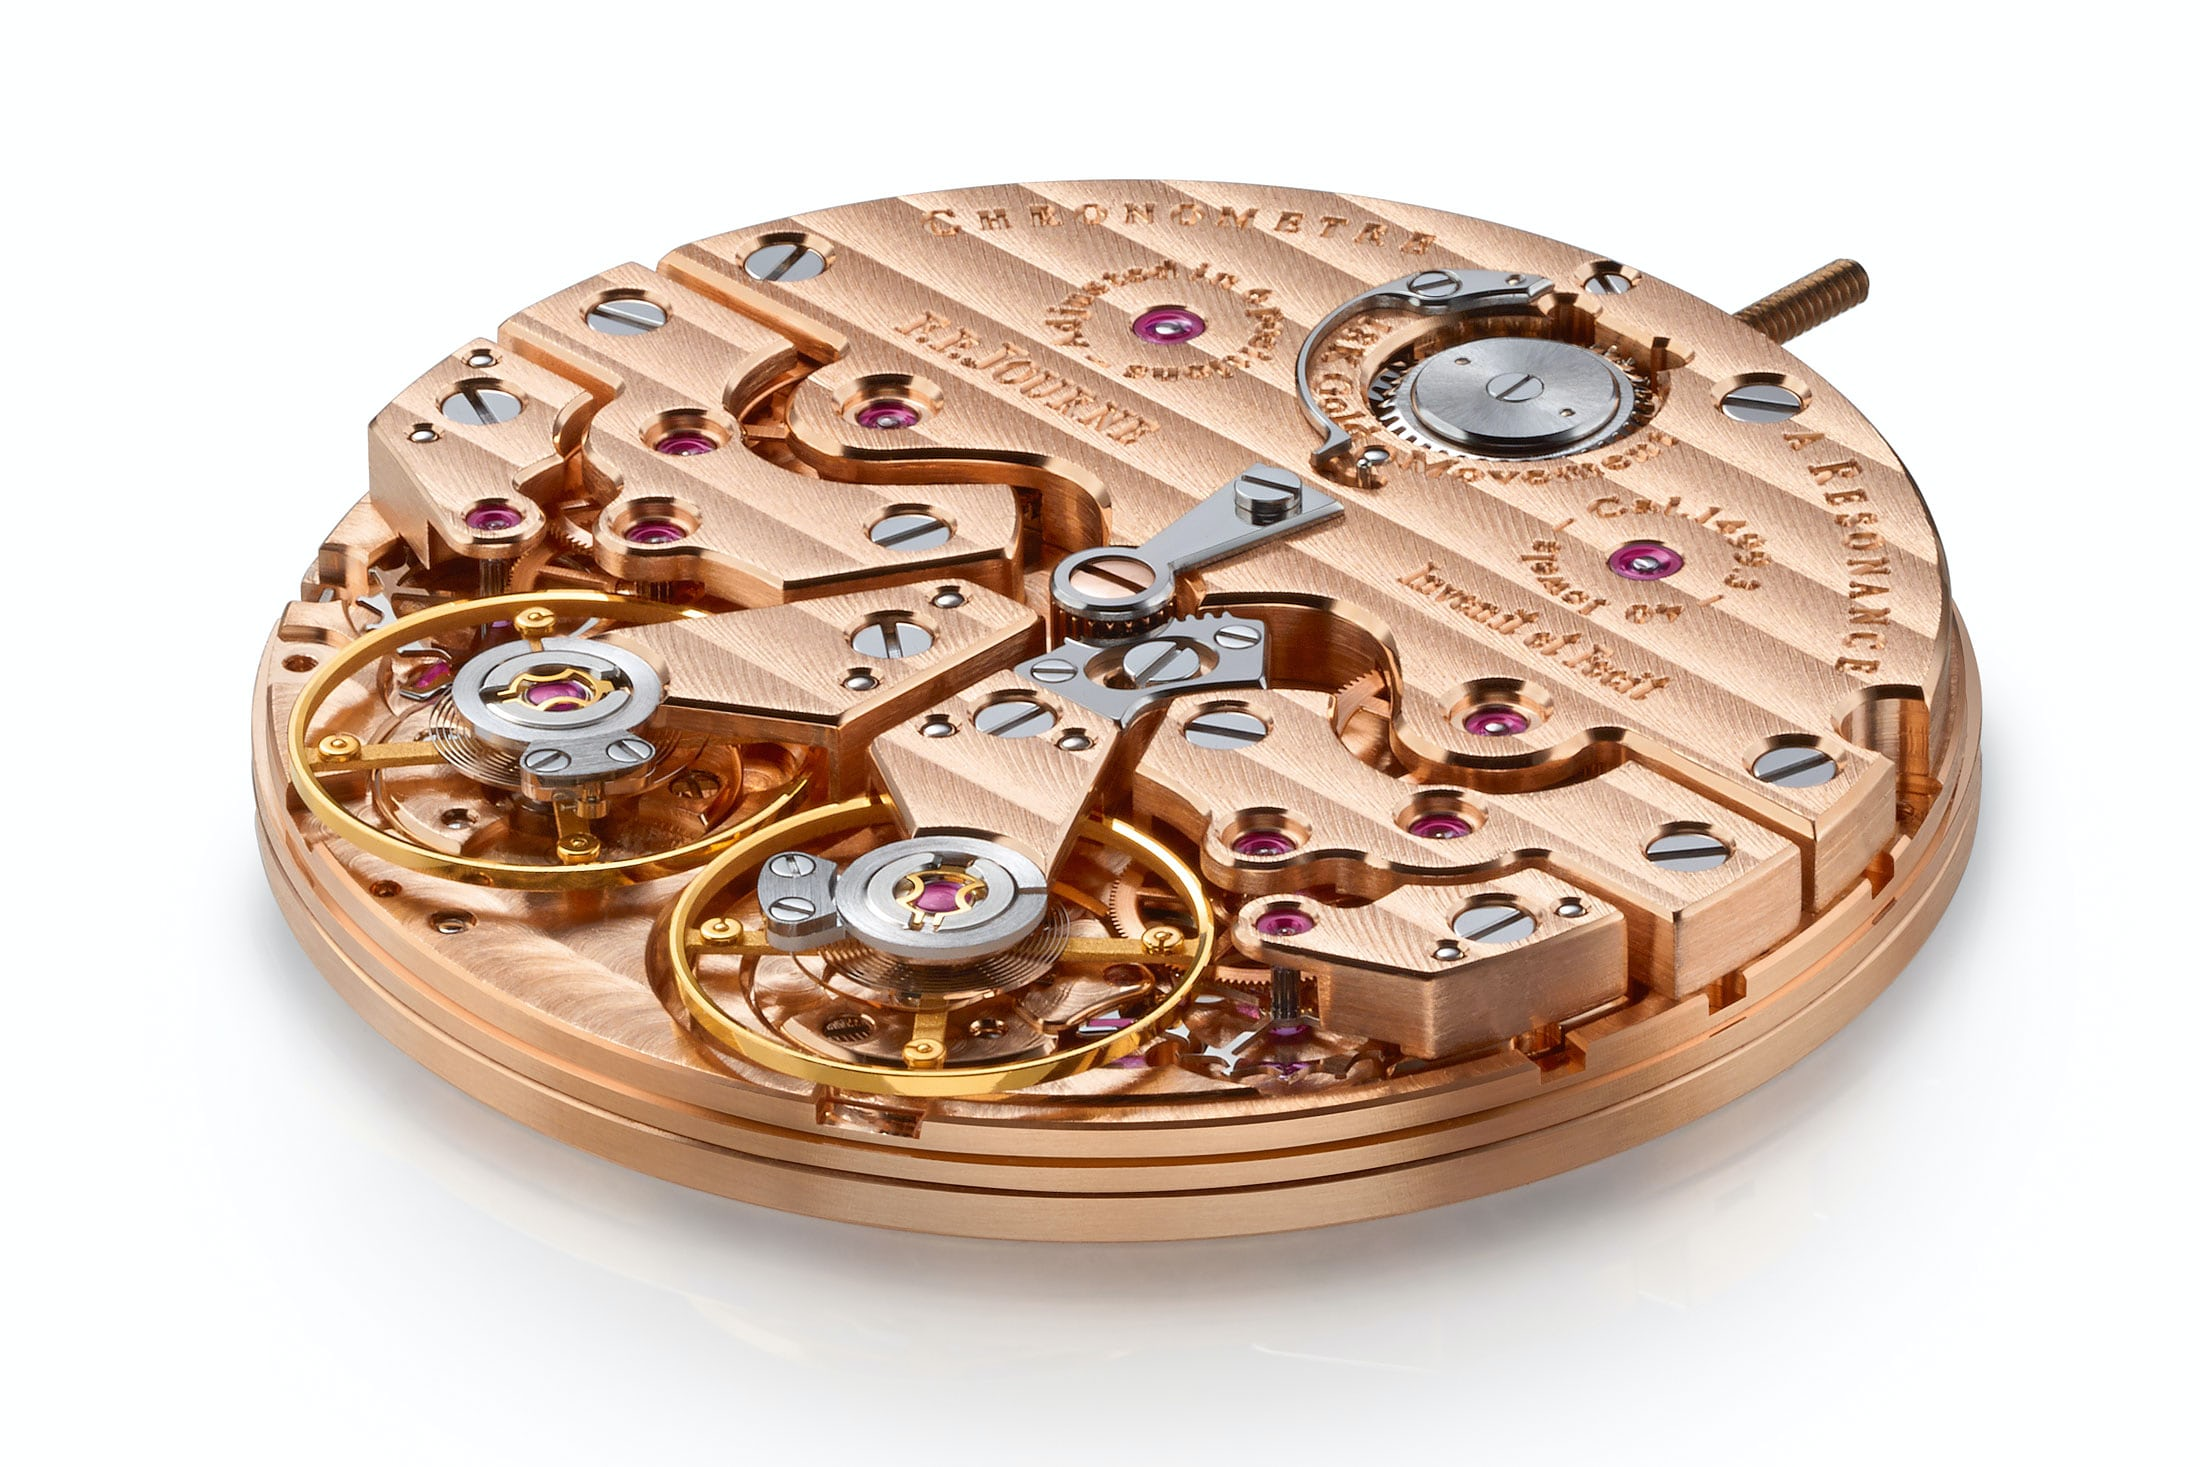 fp-journe-chronometre-a-resonance-1499.3